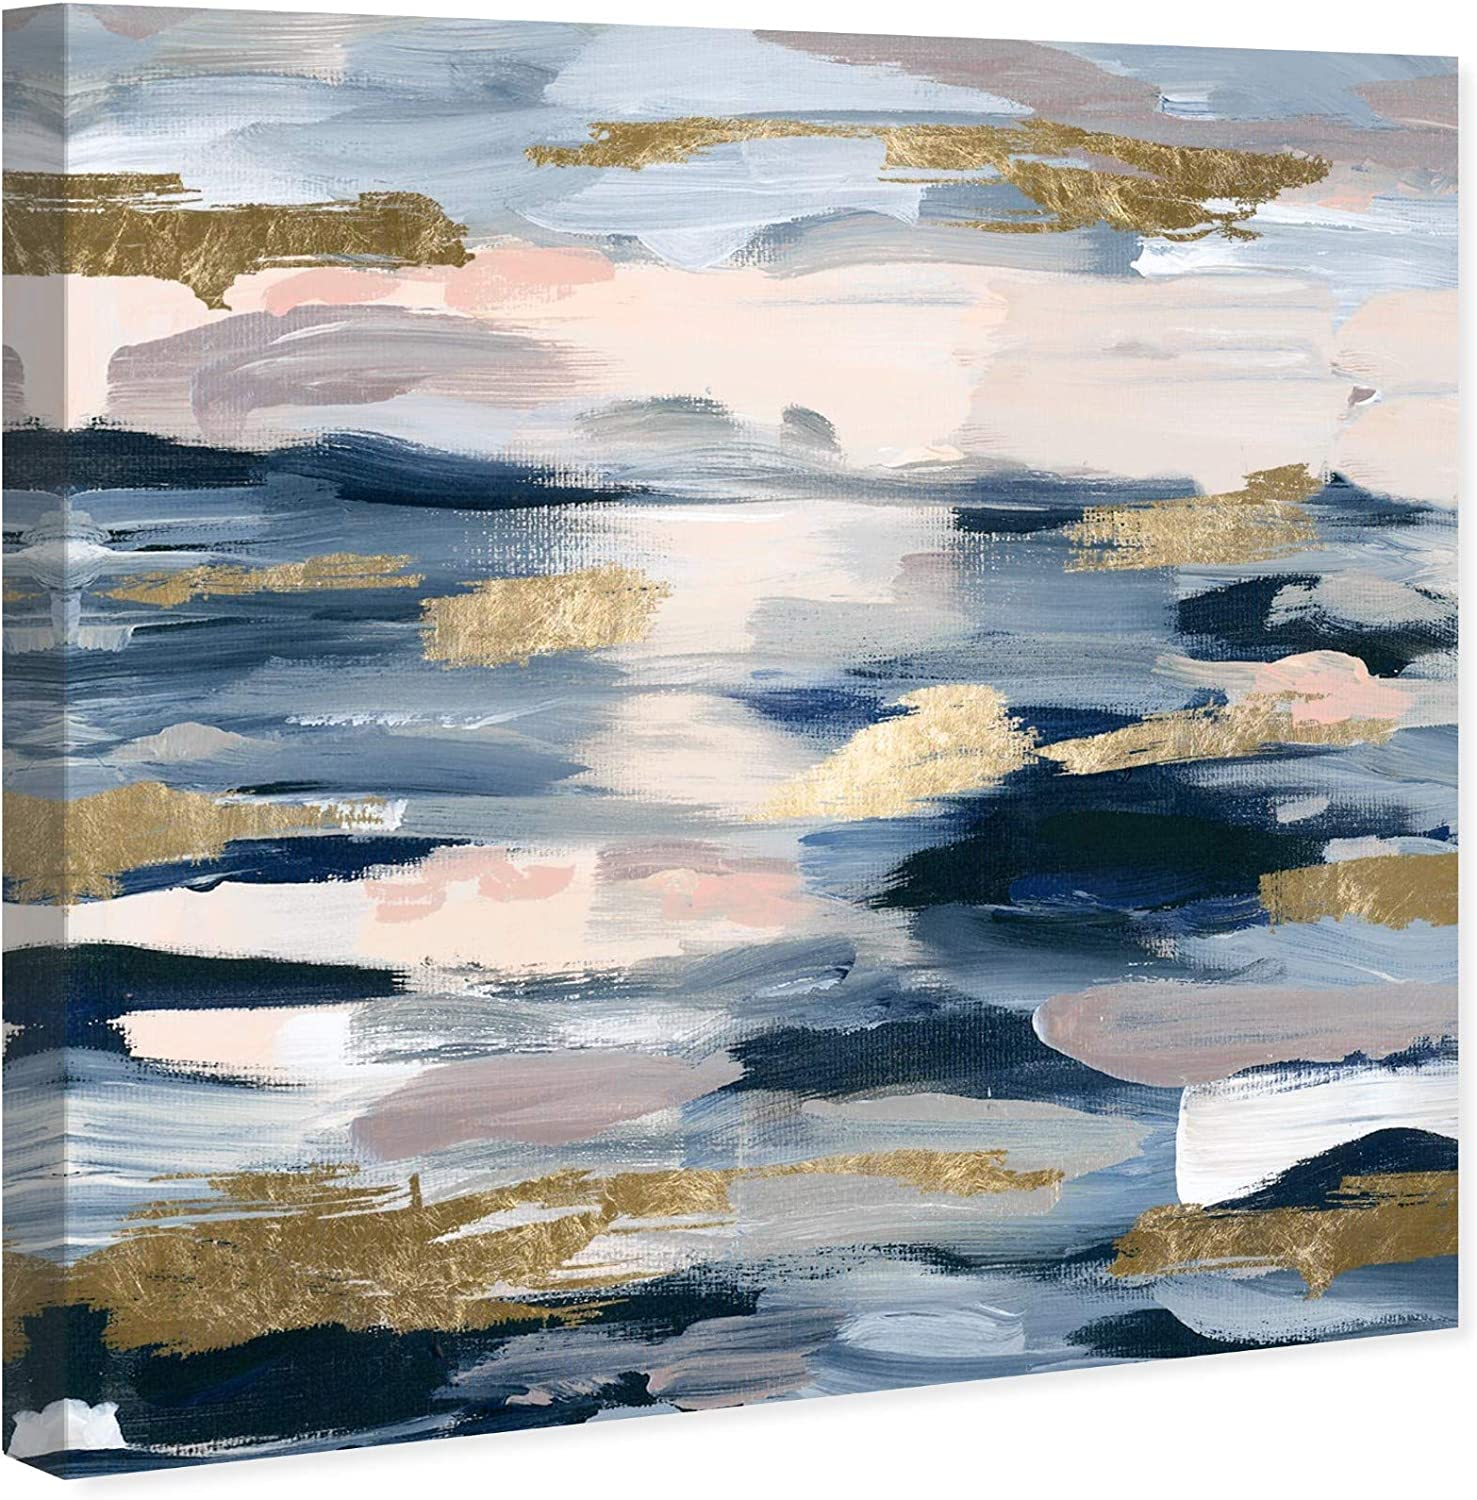 Amazon Com The Oliver Gal Artist Co Abstract Wall Art Canvas Prints Smoke On The Water Home Decor 24 X 24 Blue Pink Posters Prints